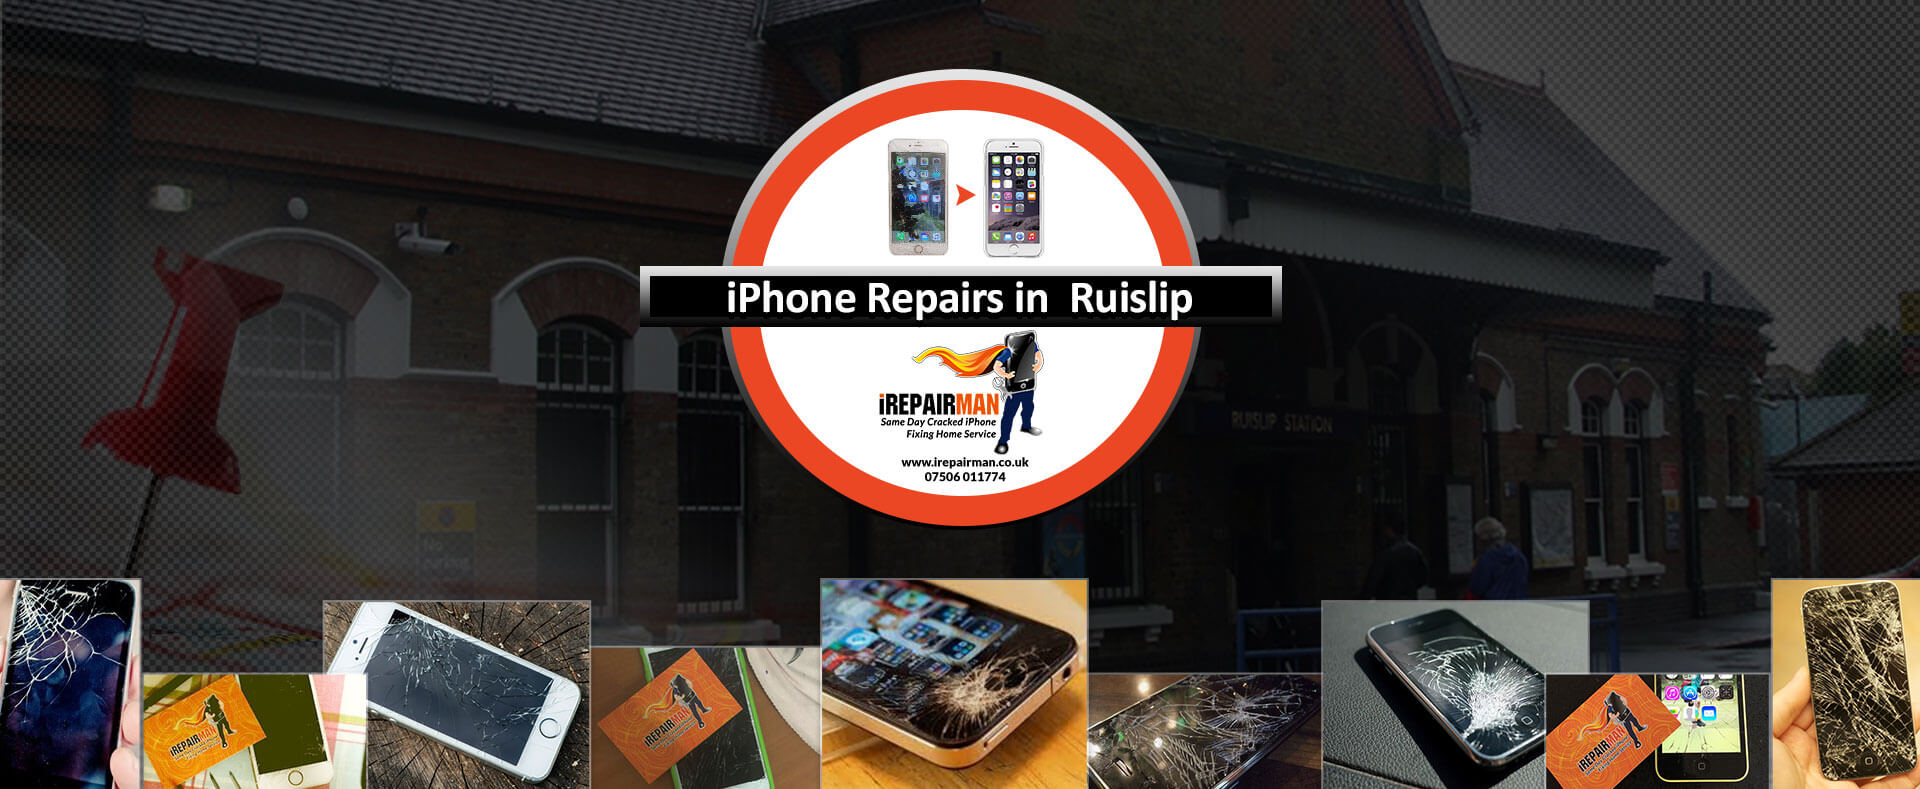 iPhone Repairs in Ruislip